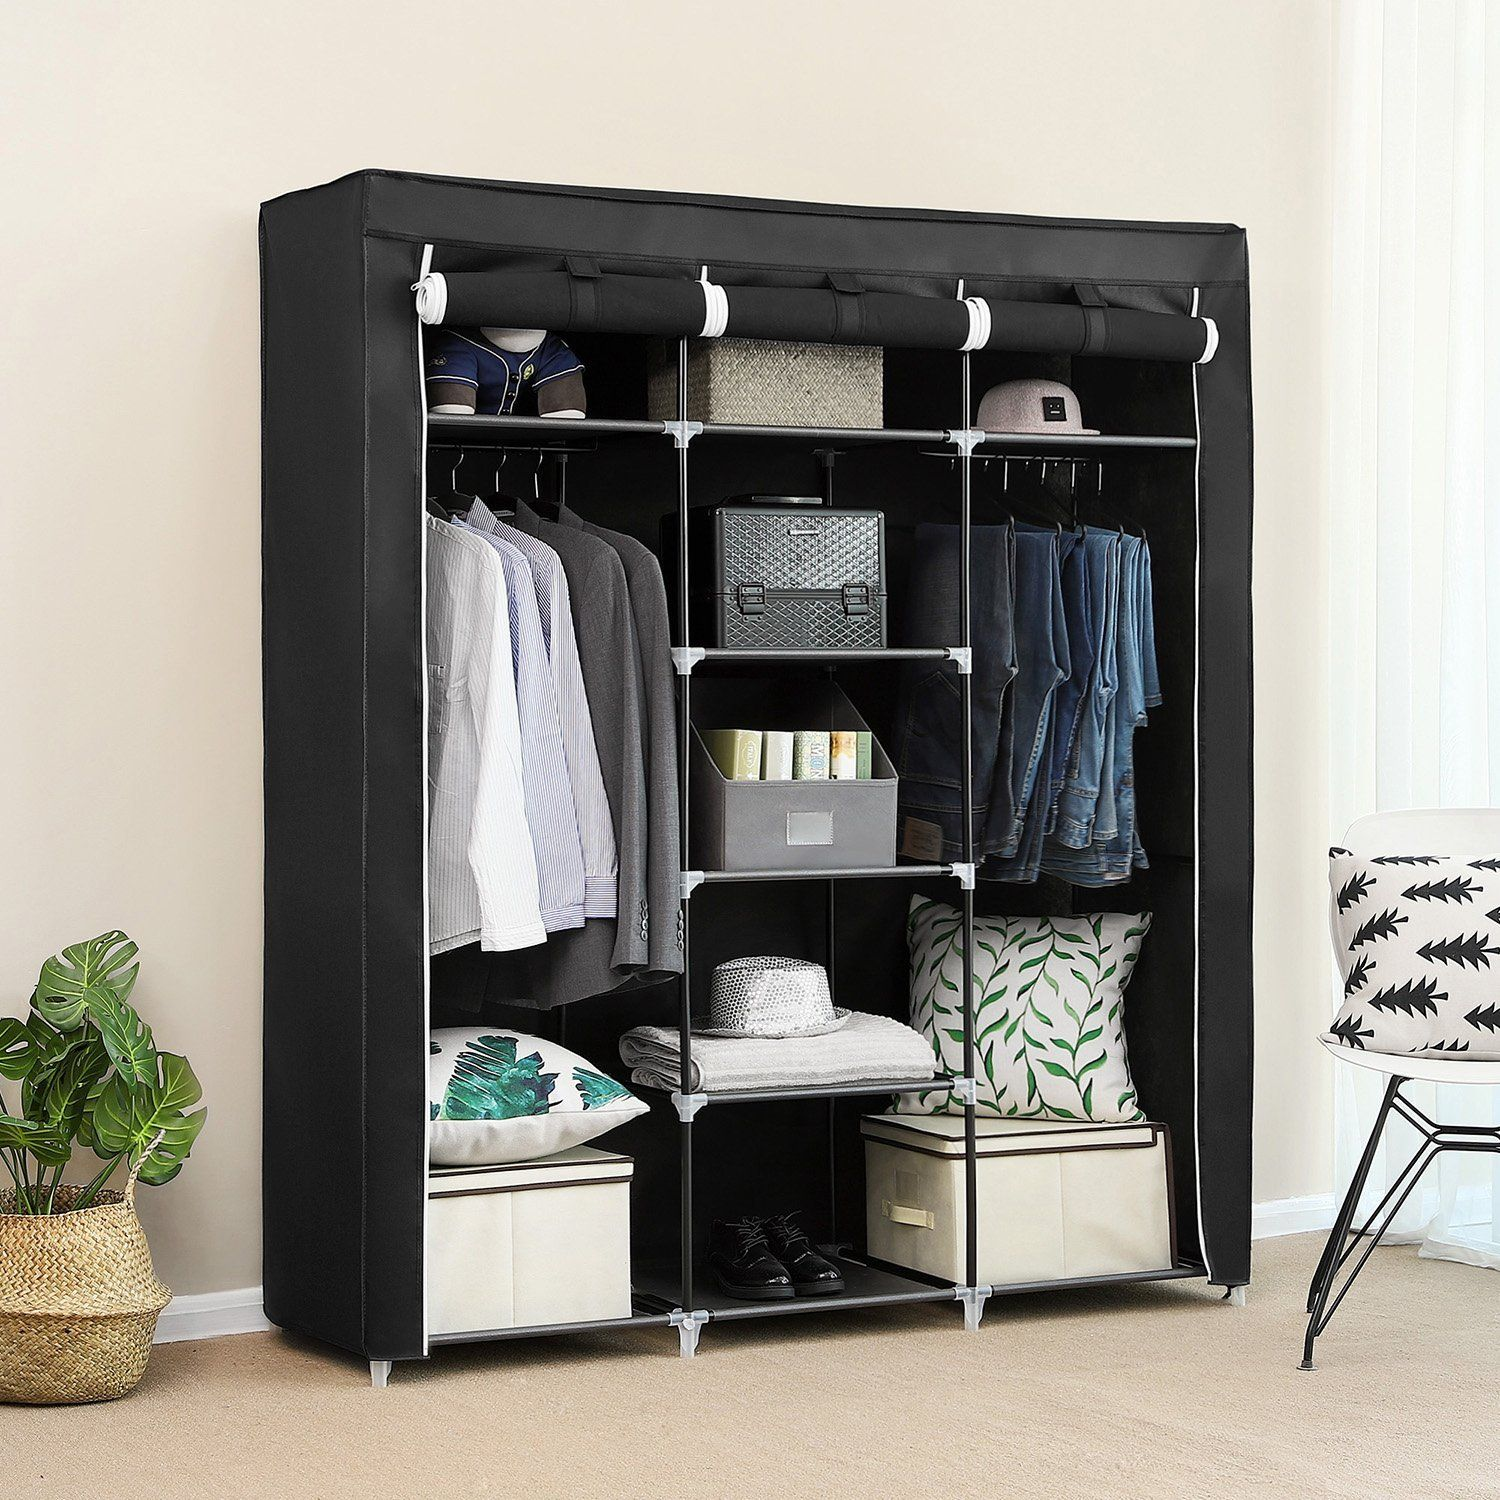 Ongmics Portable Clothes Closet